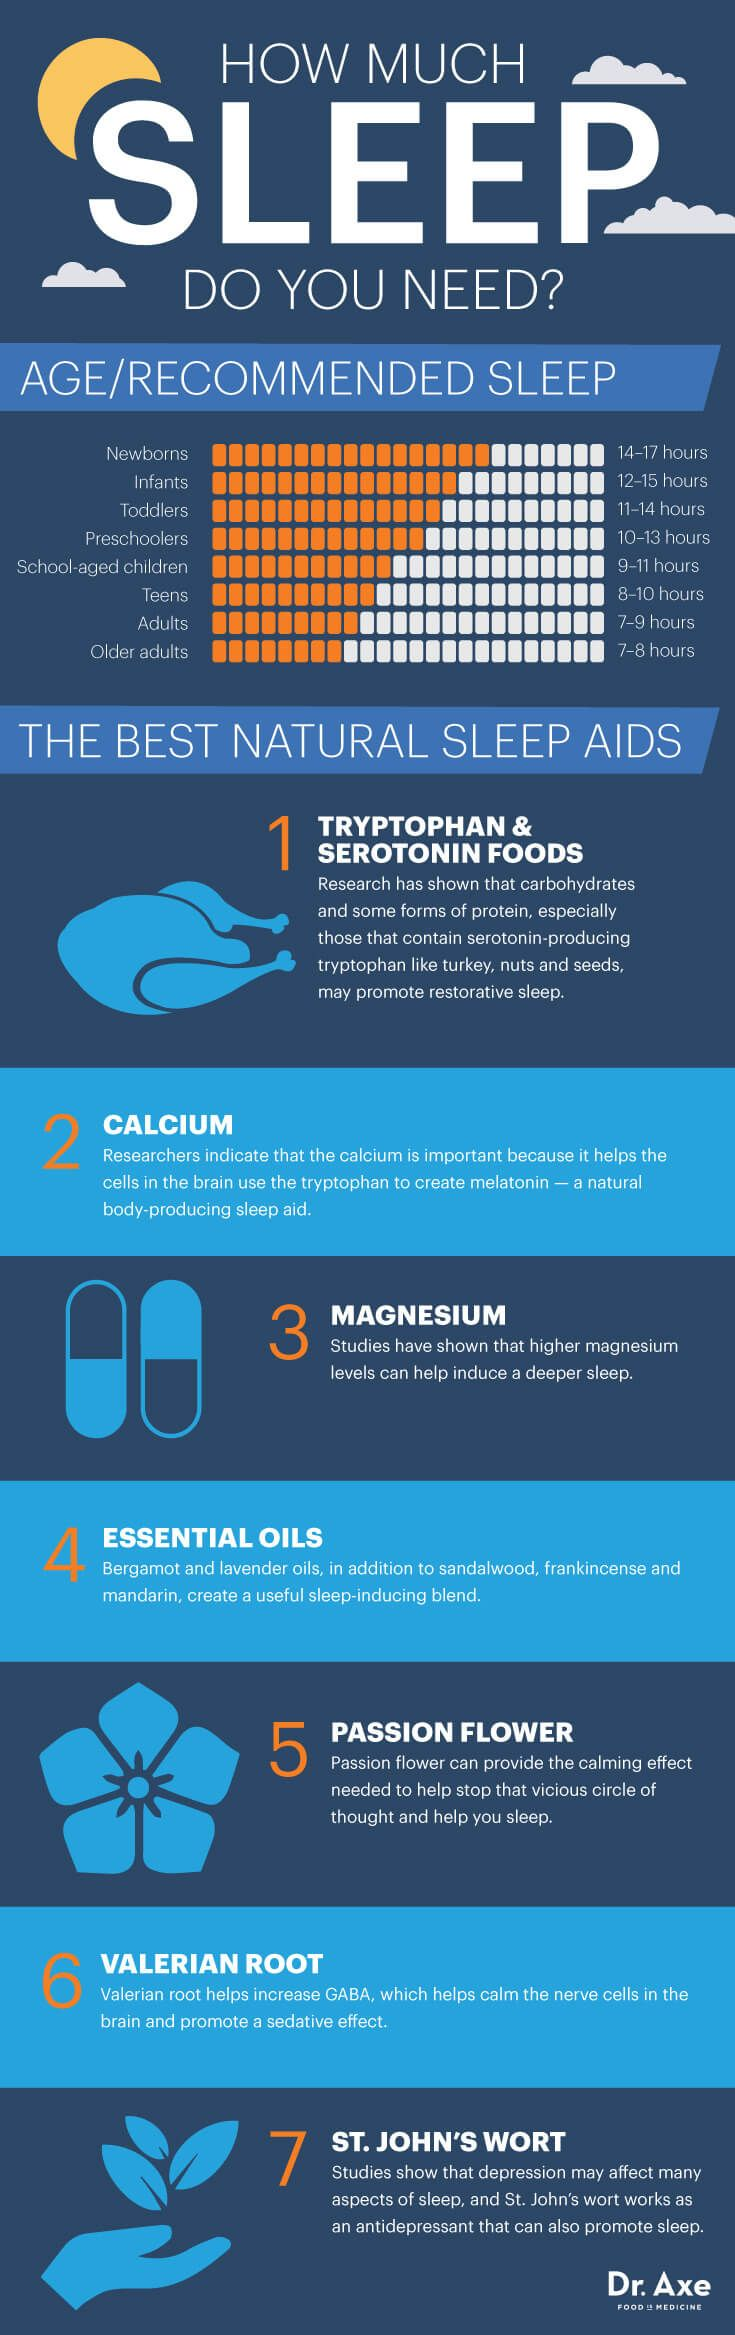 Top seven natural sleep aids - Dr. Axe http://www.draxe.com #health #holistic #natural